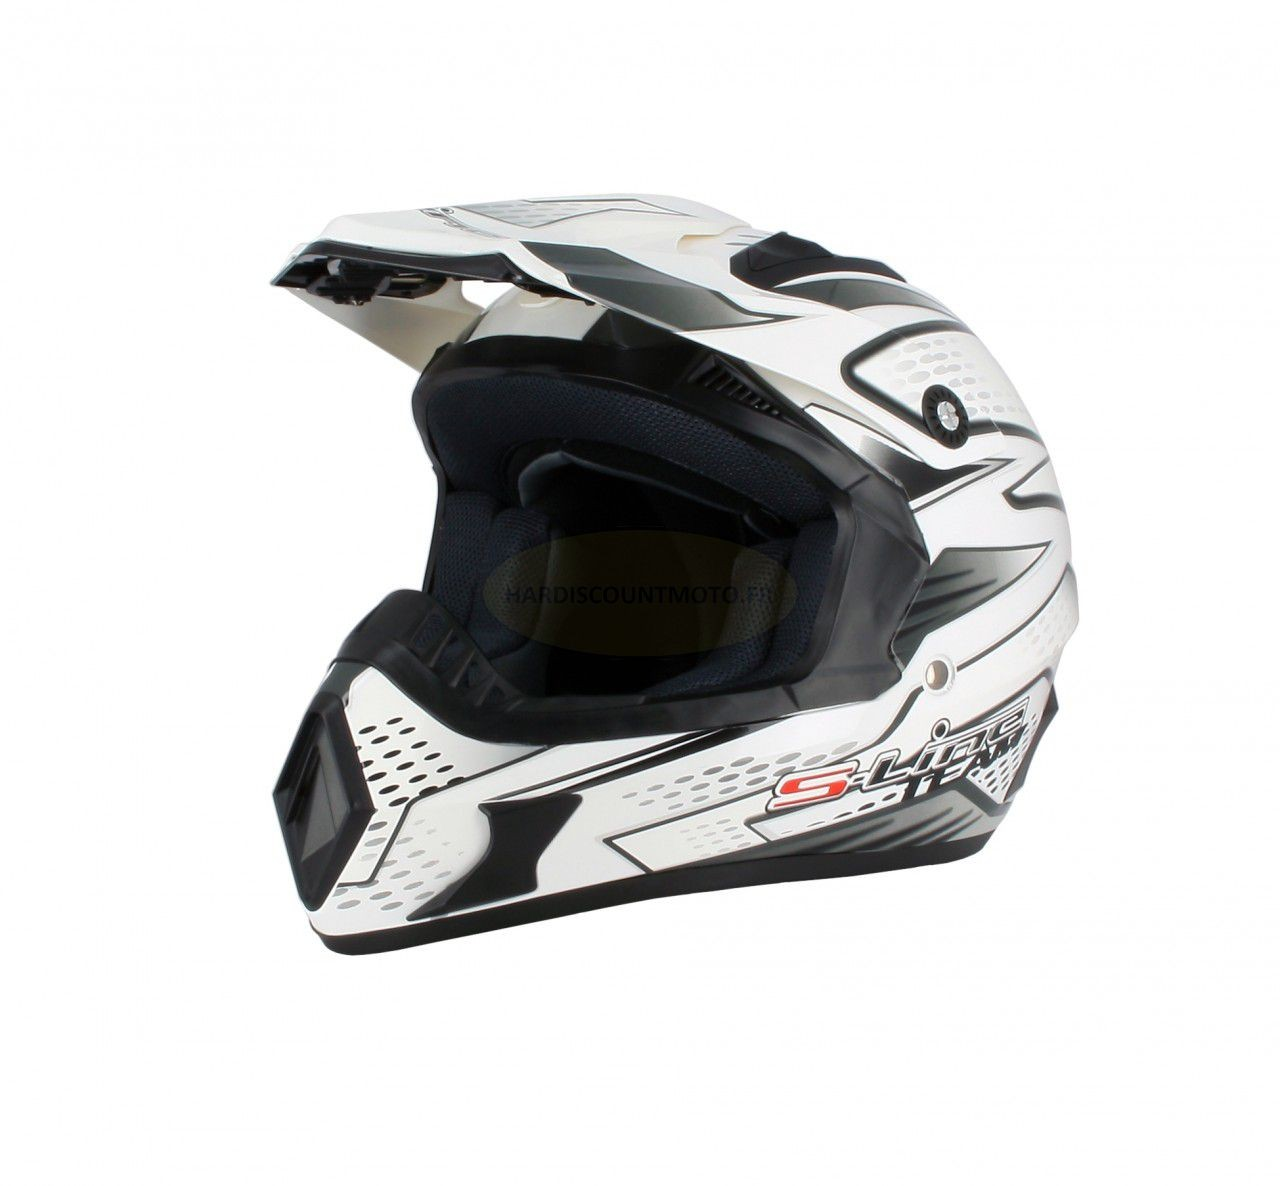 Casque Moto Cross S813 de S-Line